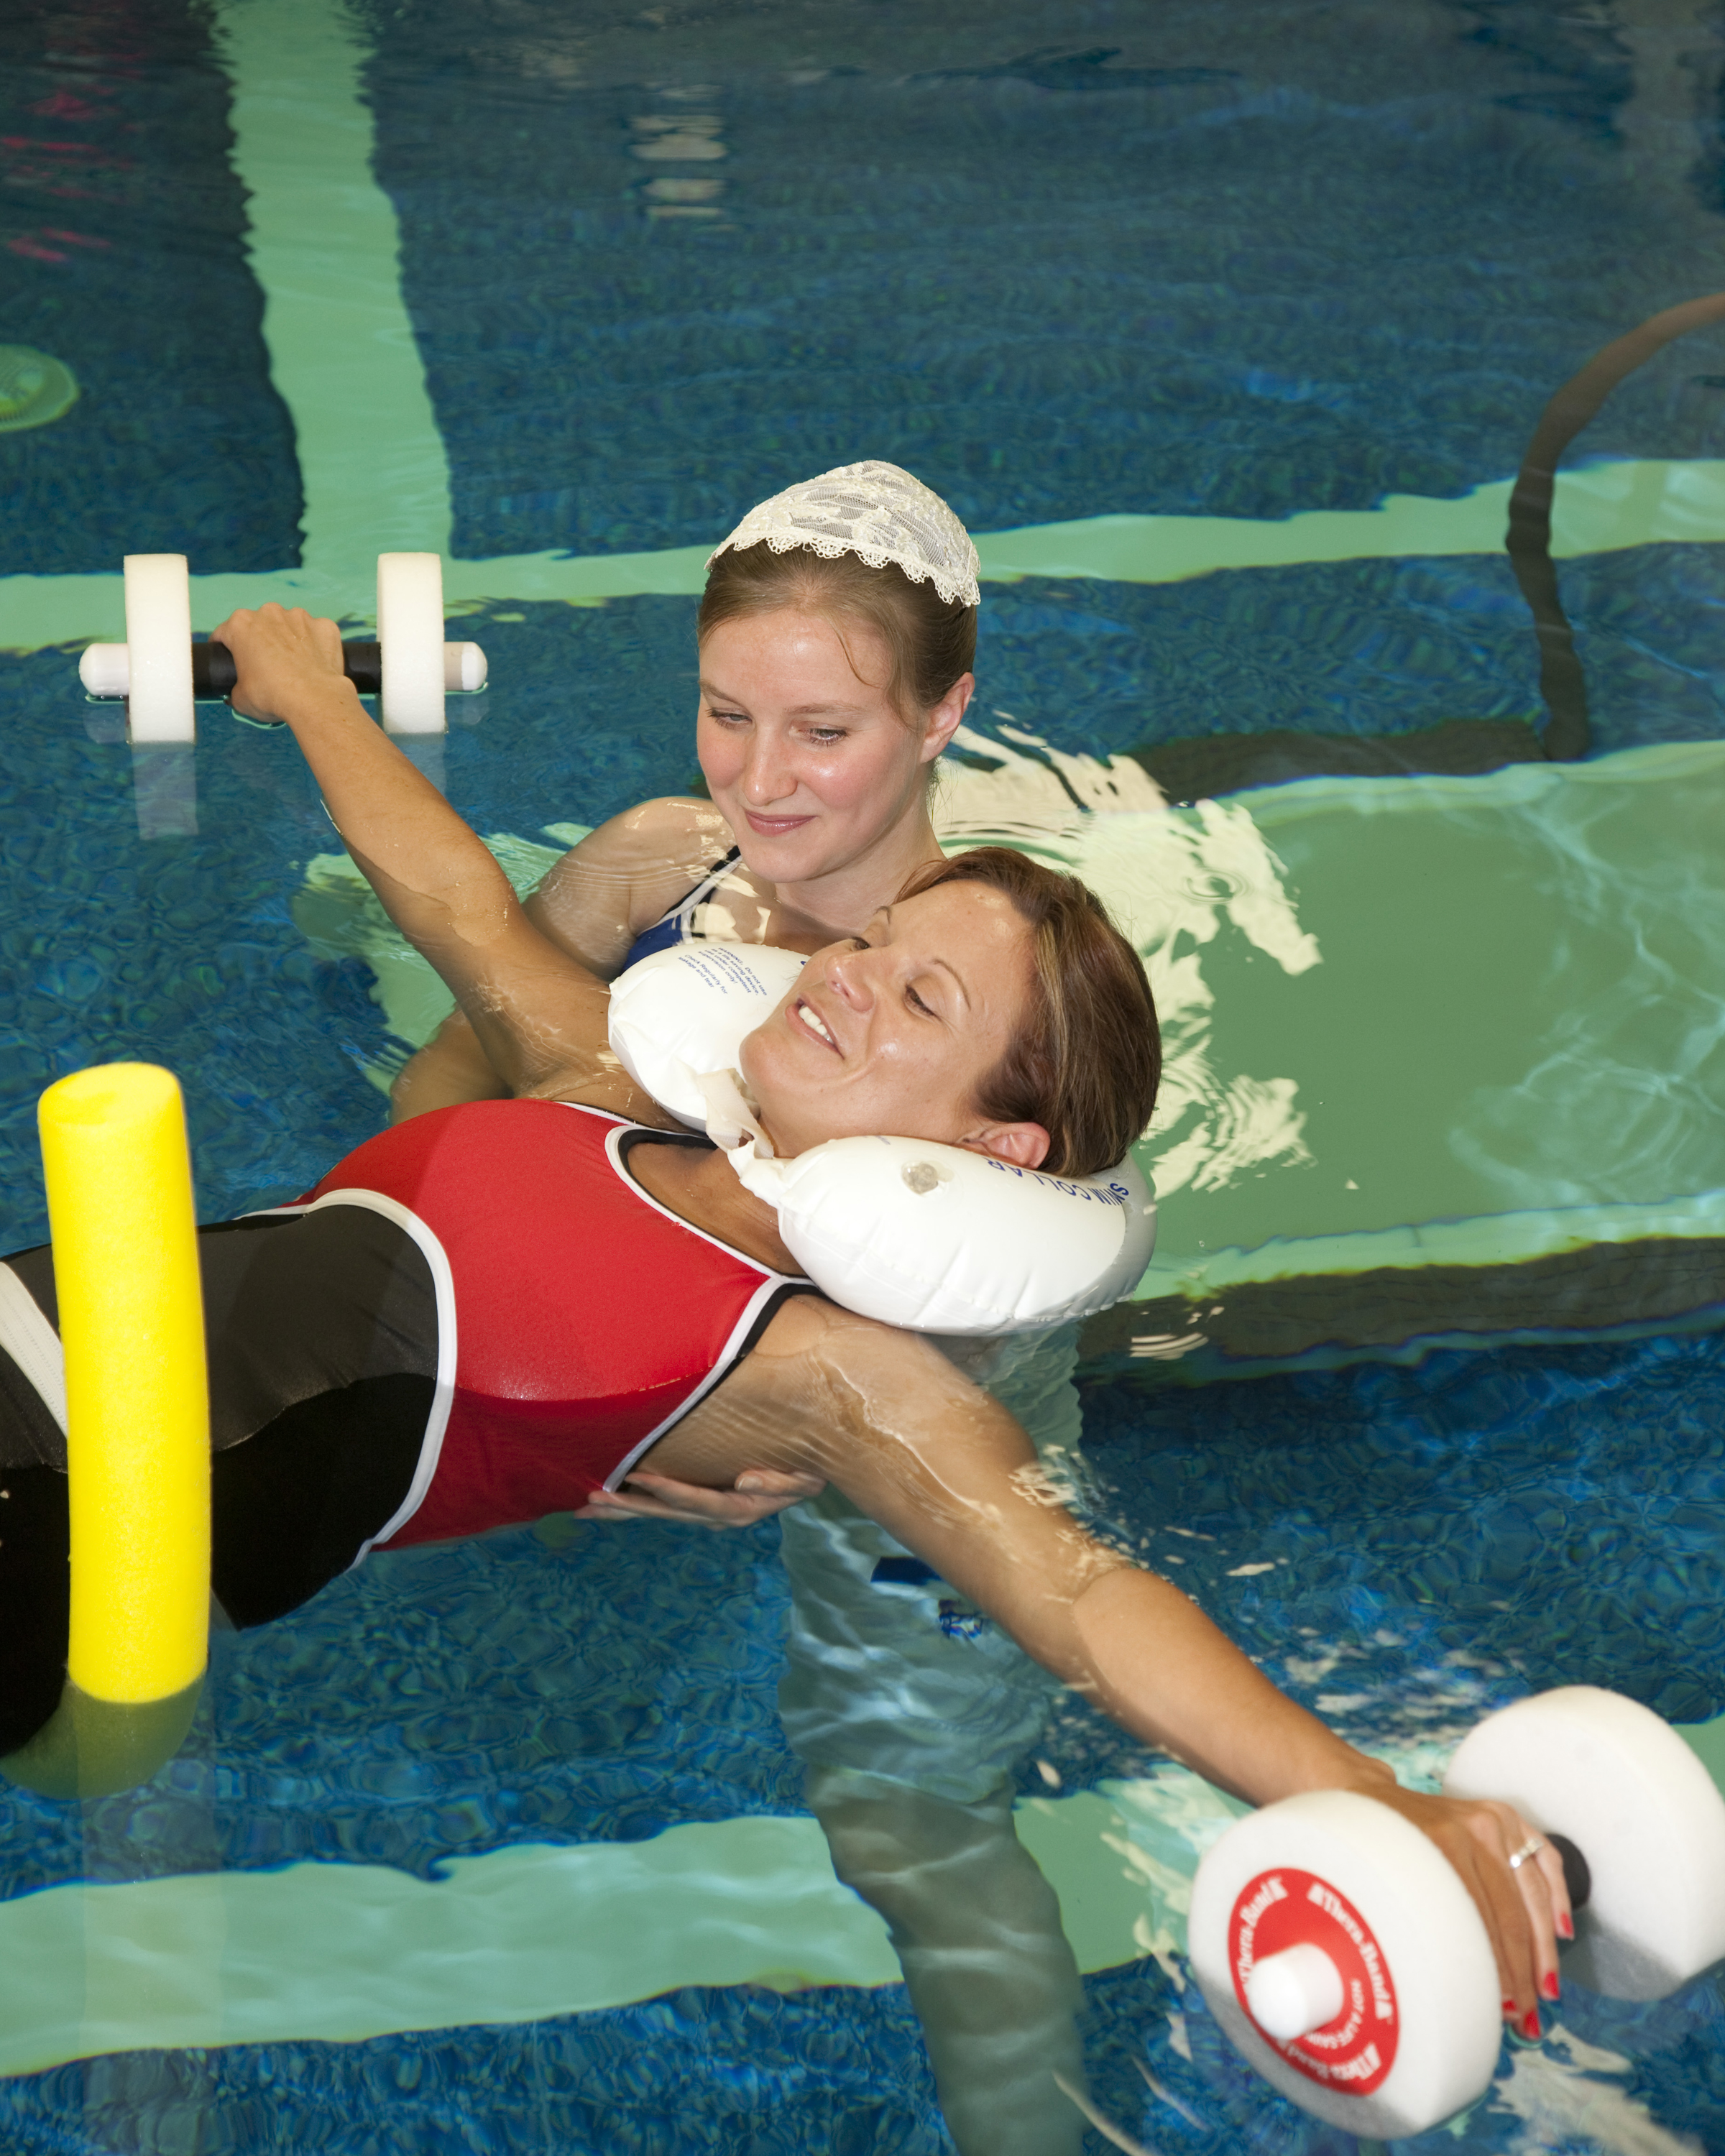 PPT-Aquatic-Therapy_01.jpg